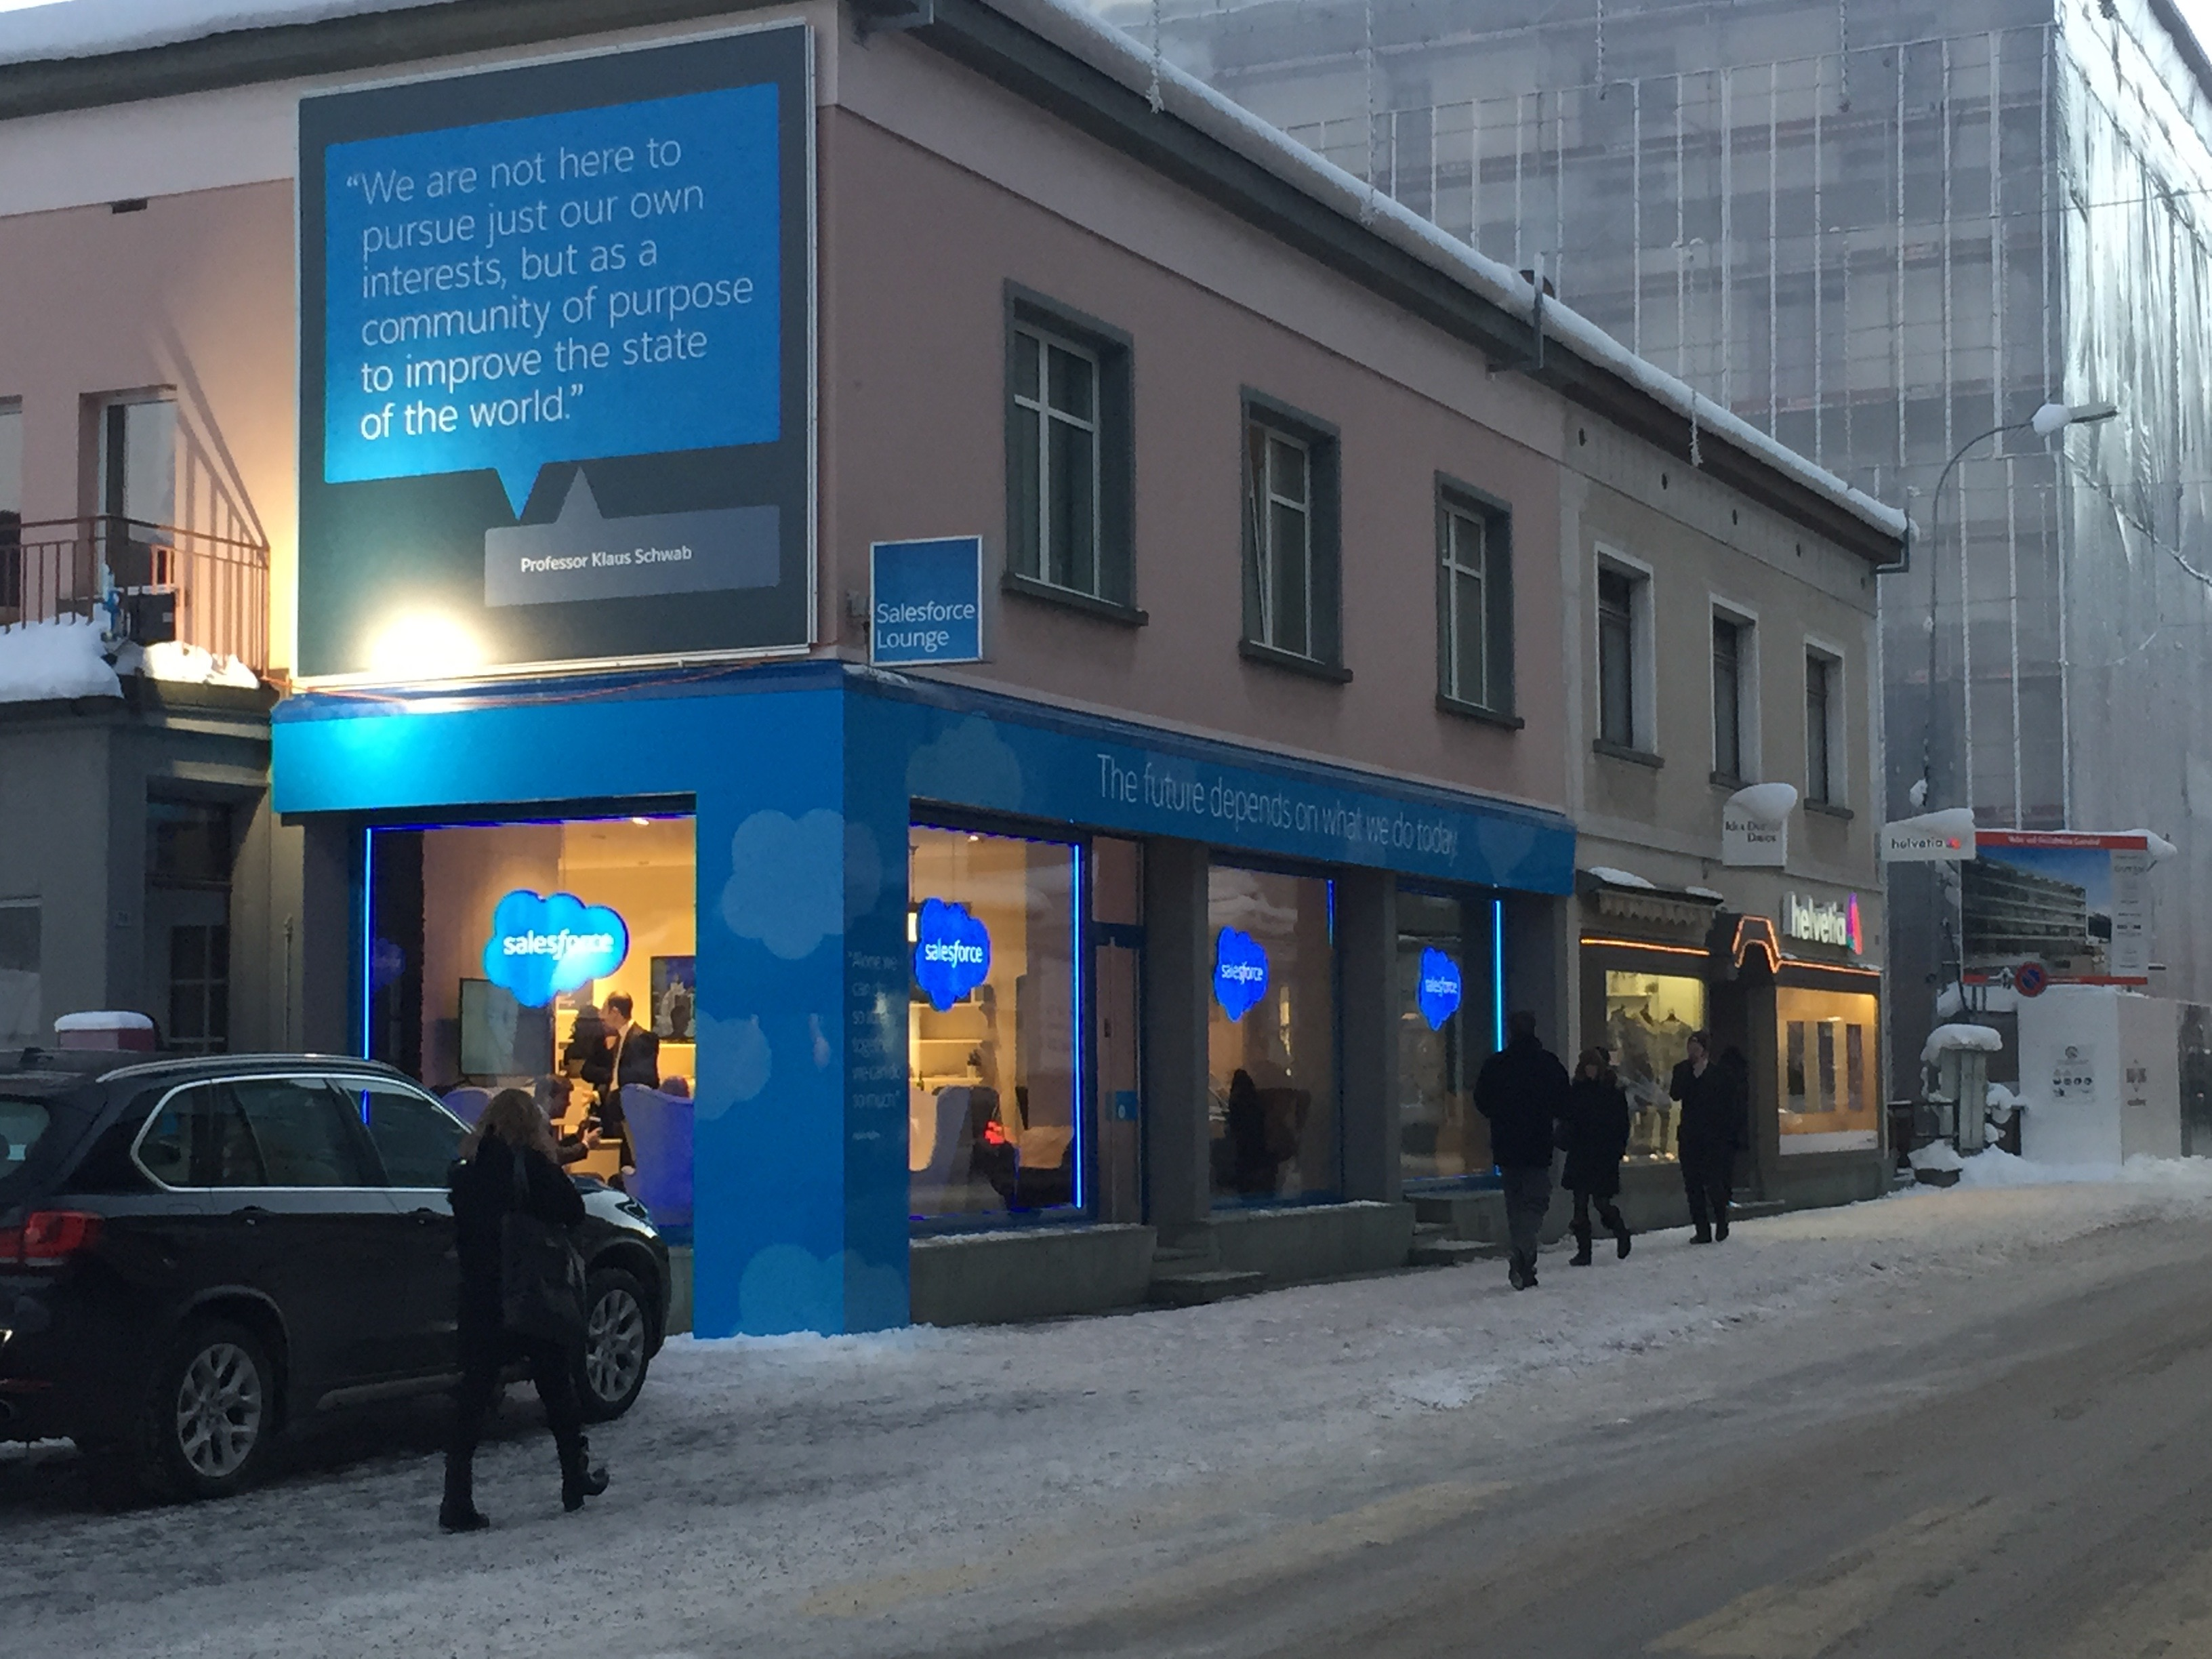 Salesforce pop-up store in Davos, Switzerland.